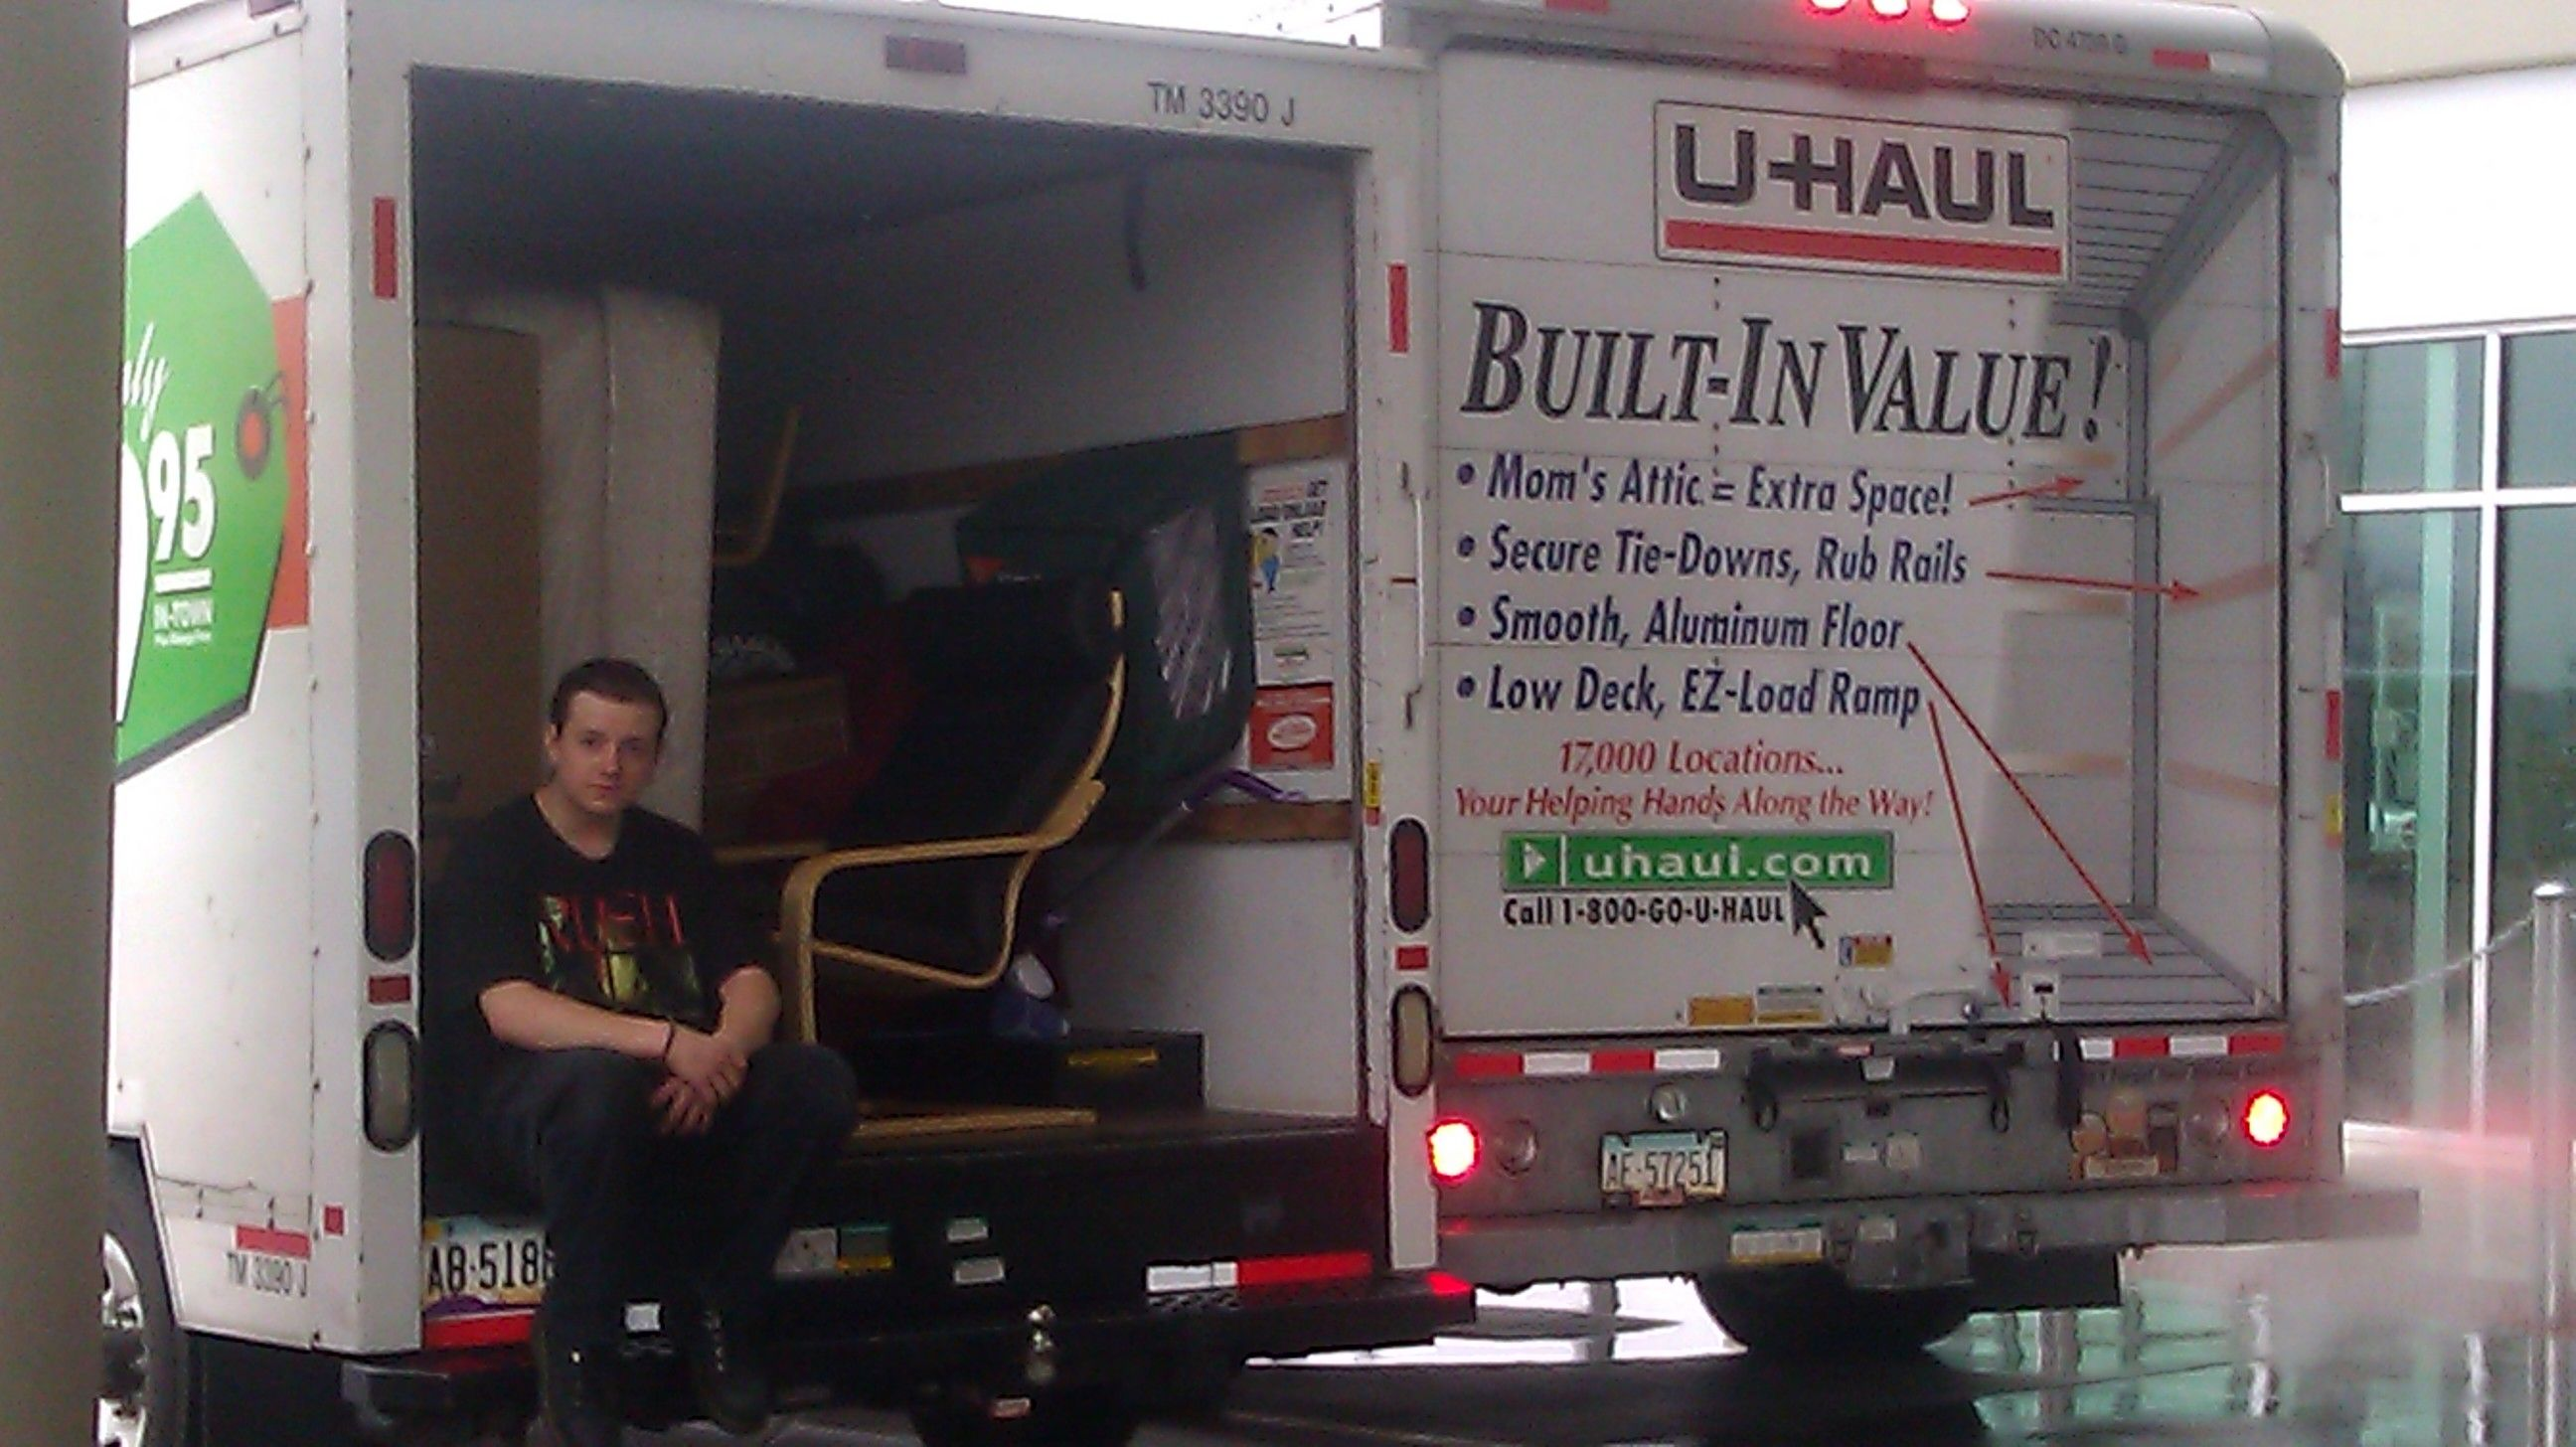 Small Time Moving Is Great With Packing And Organizational Skills We Have Had Years Of Moving Experience And Caring For Our Customer S Belongings Our Low Deck